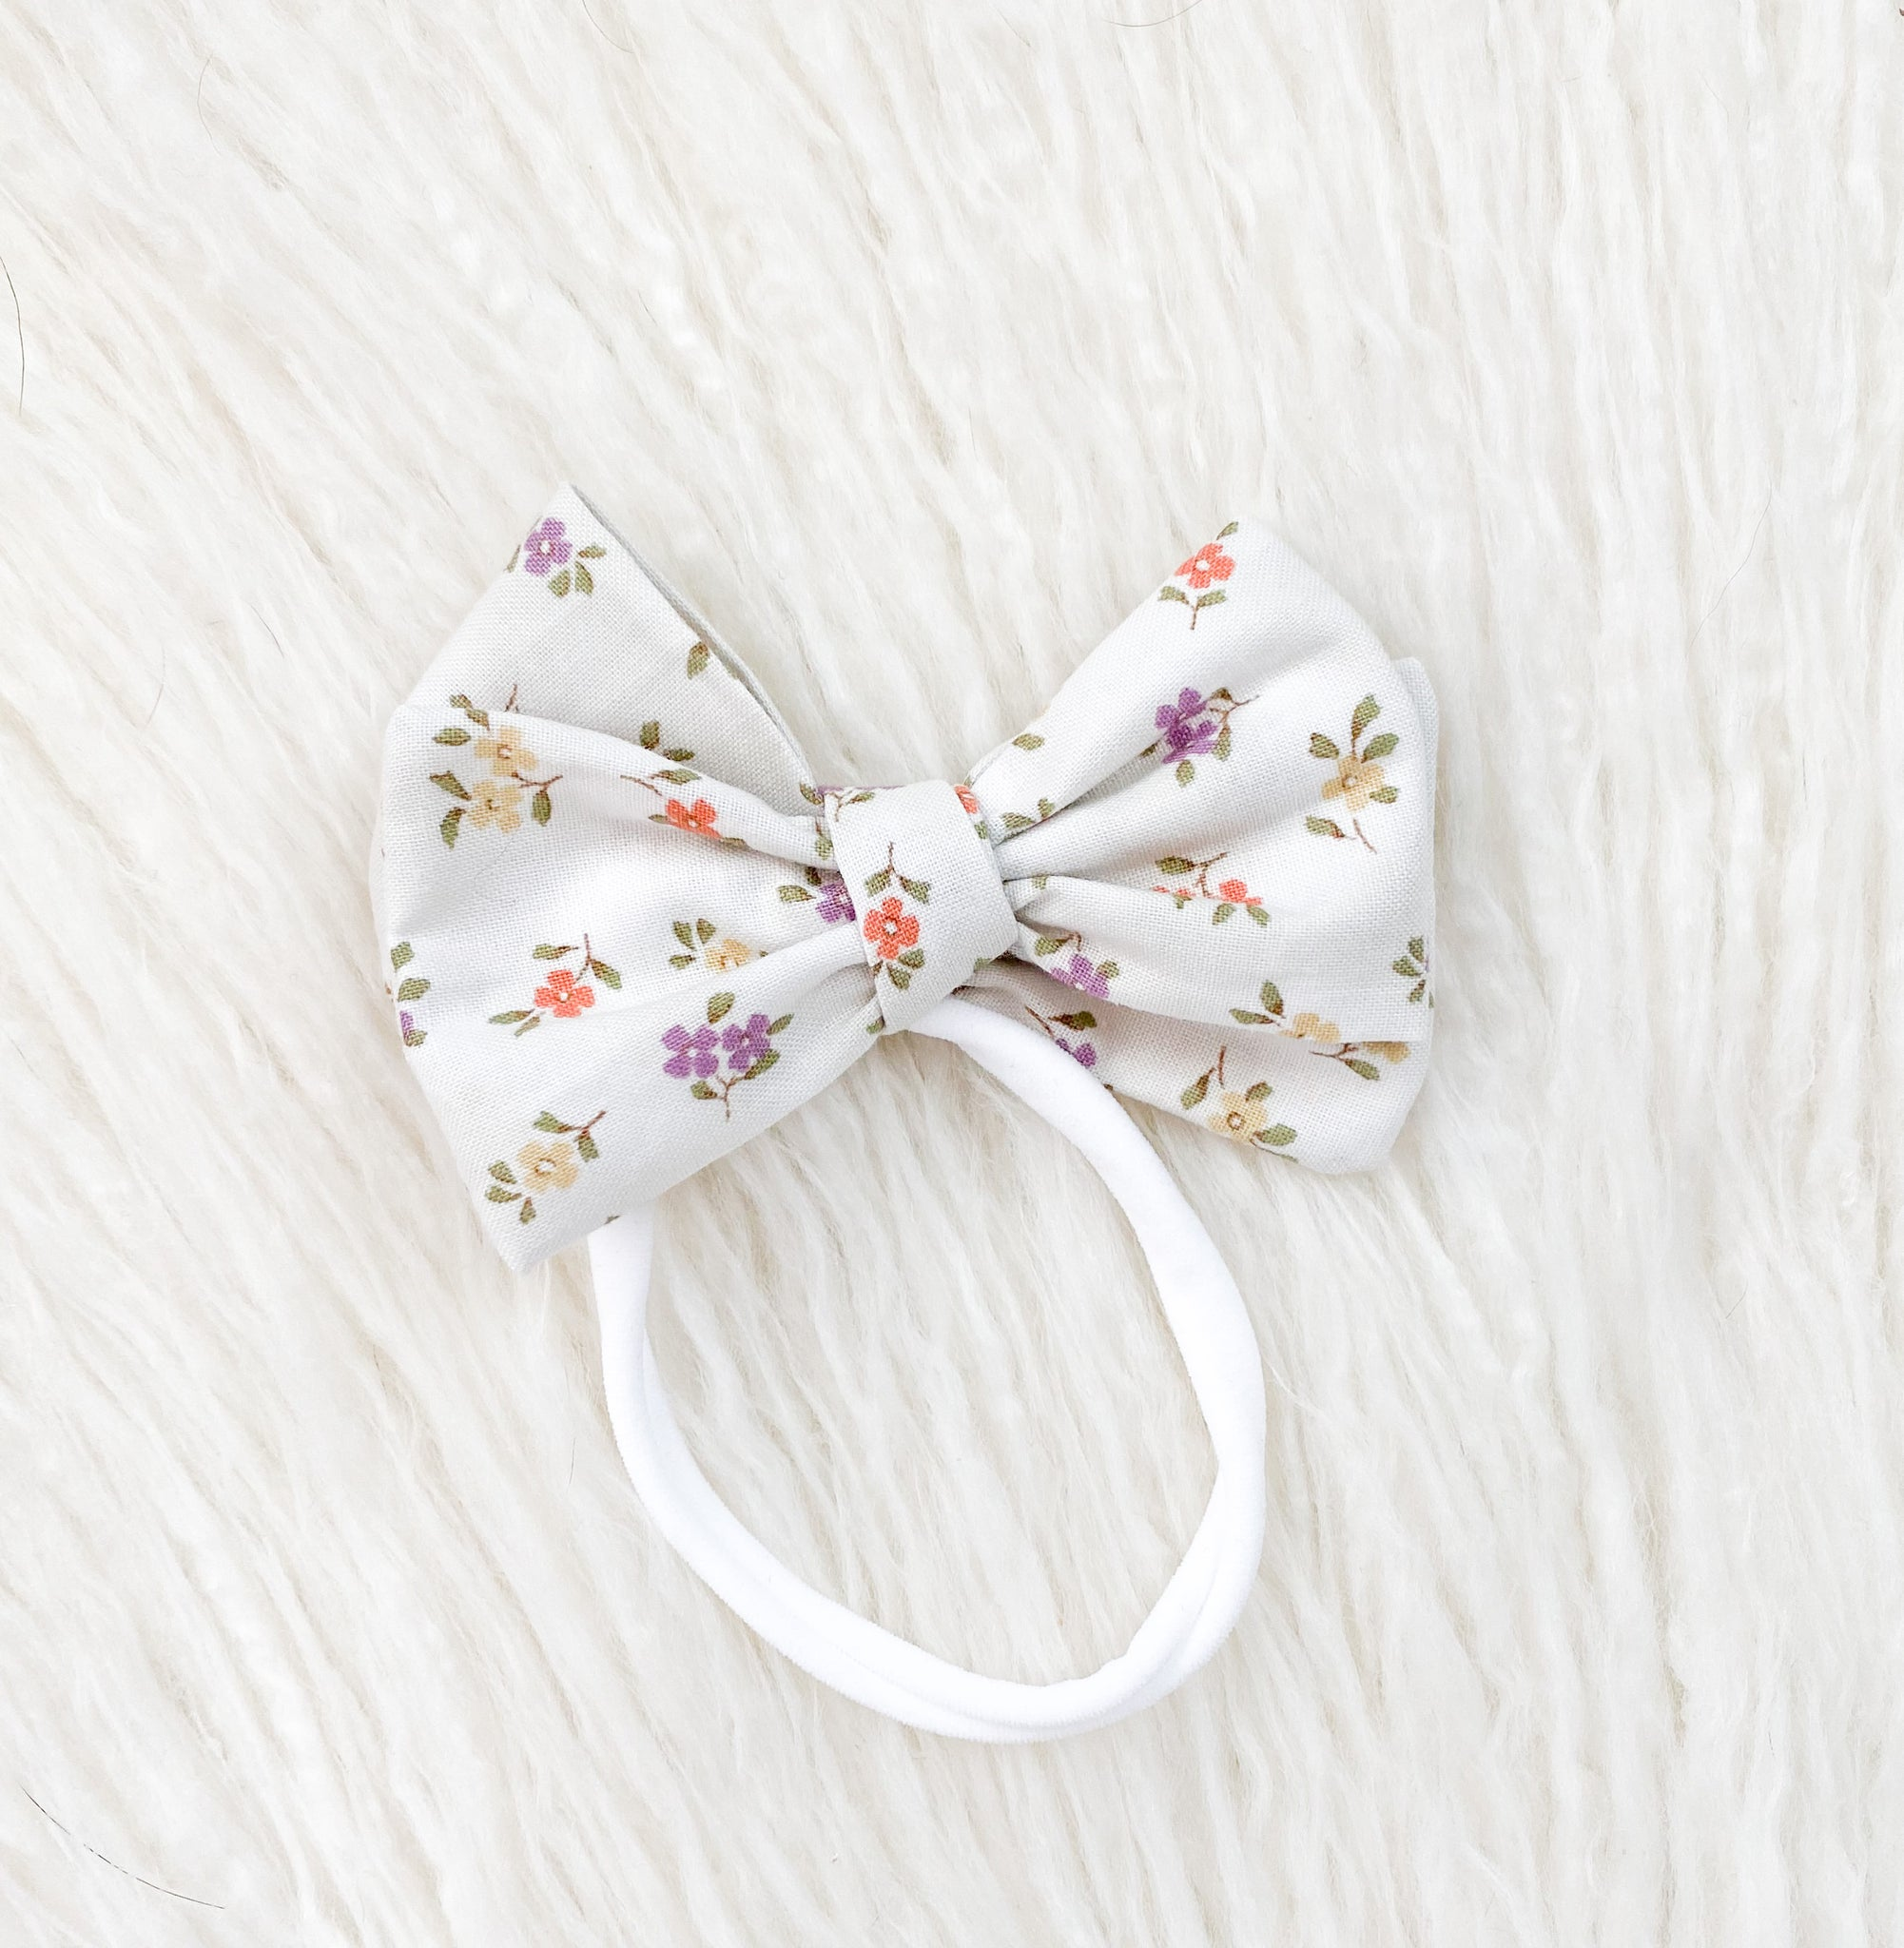 The Poppy Bow - Dainty